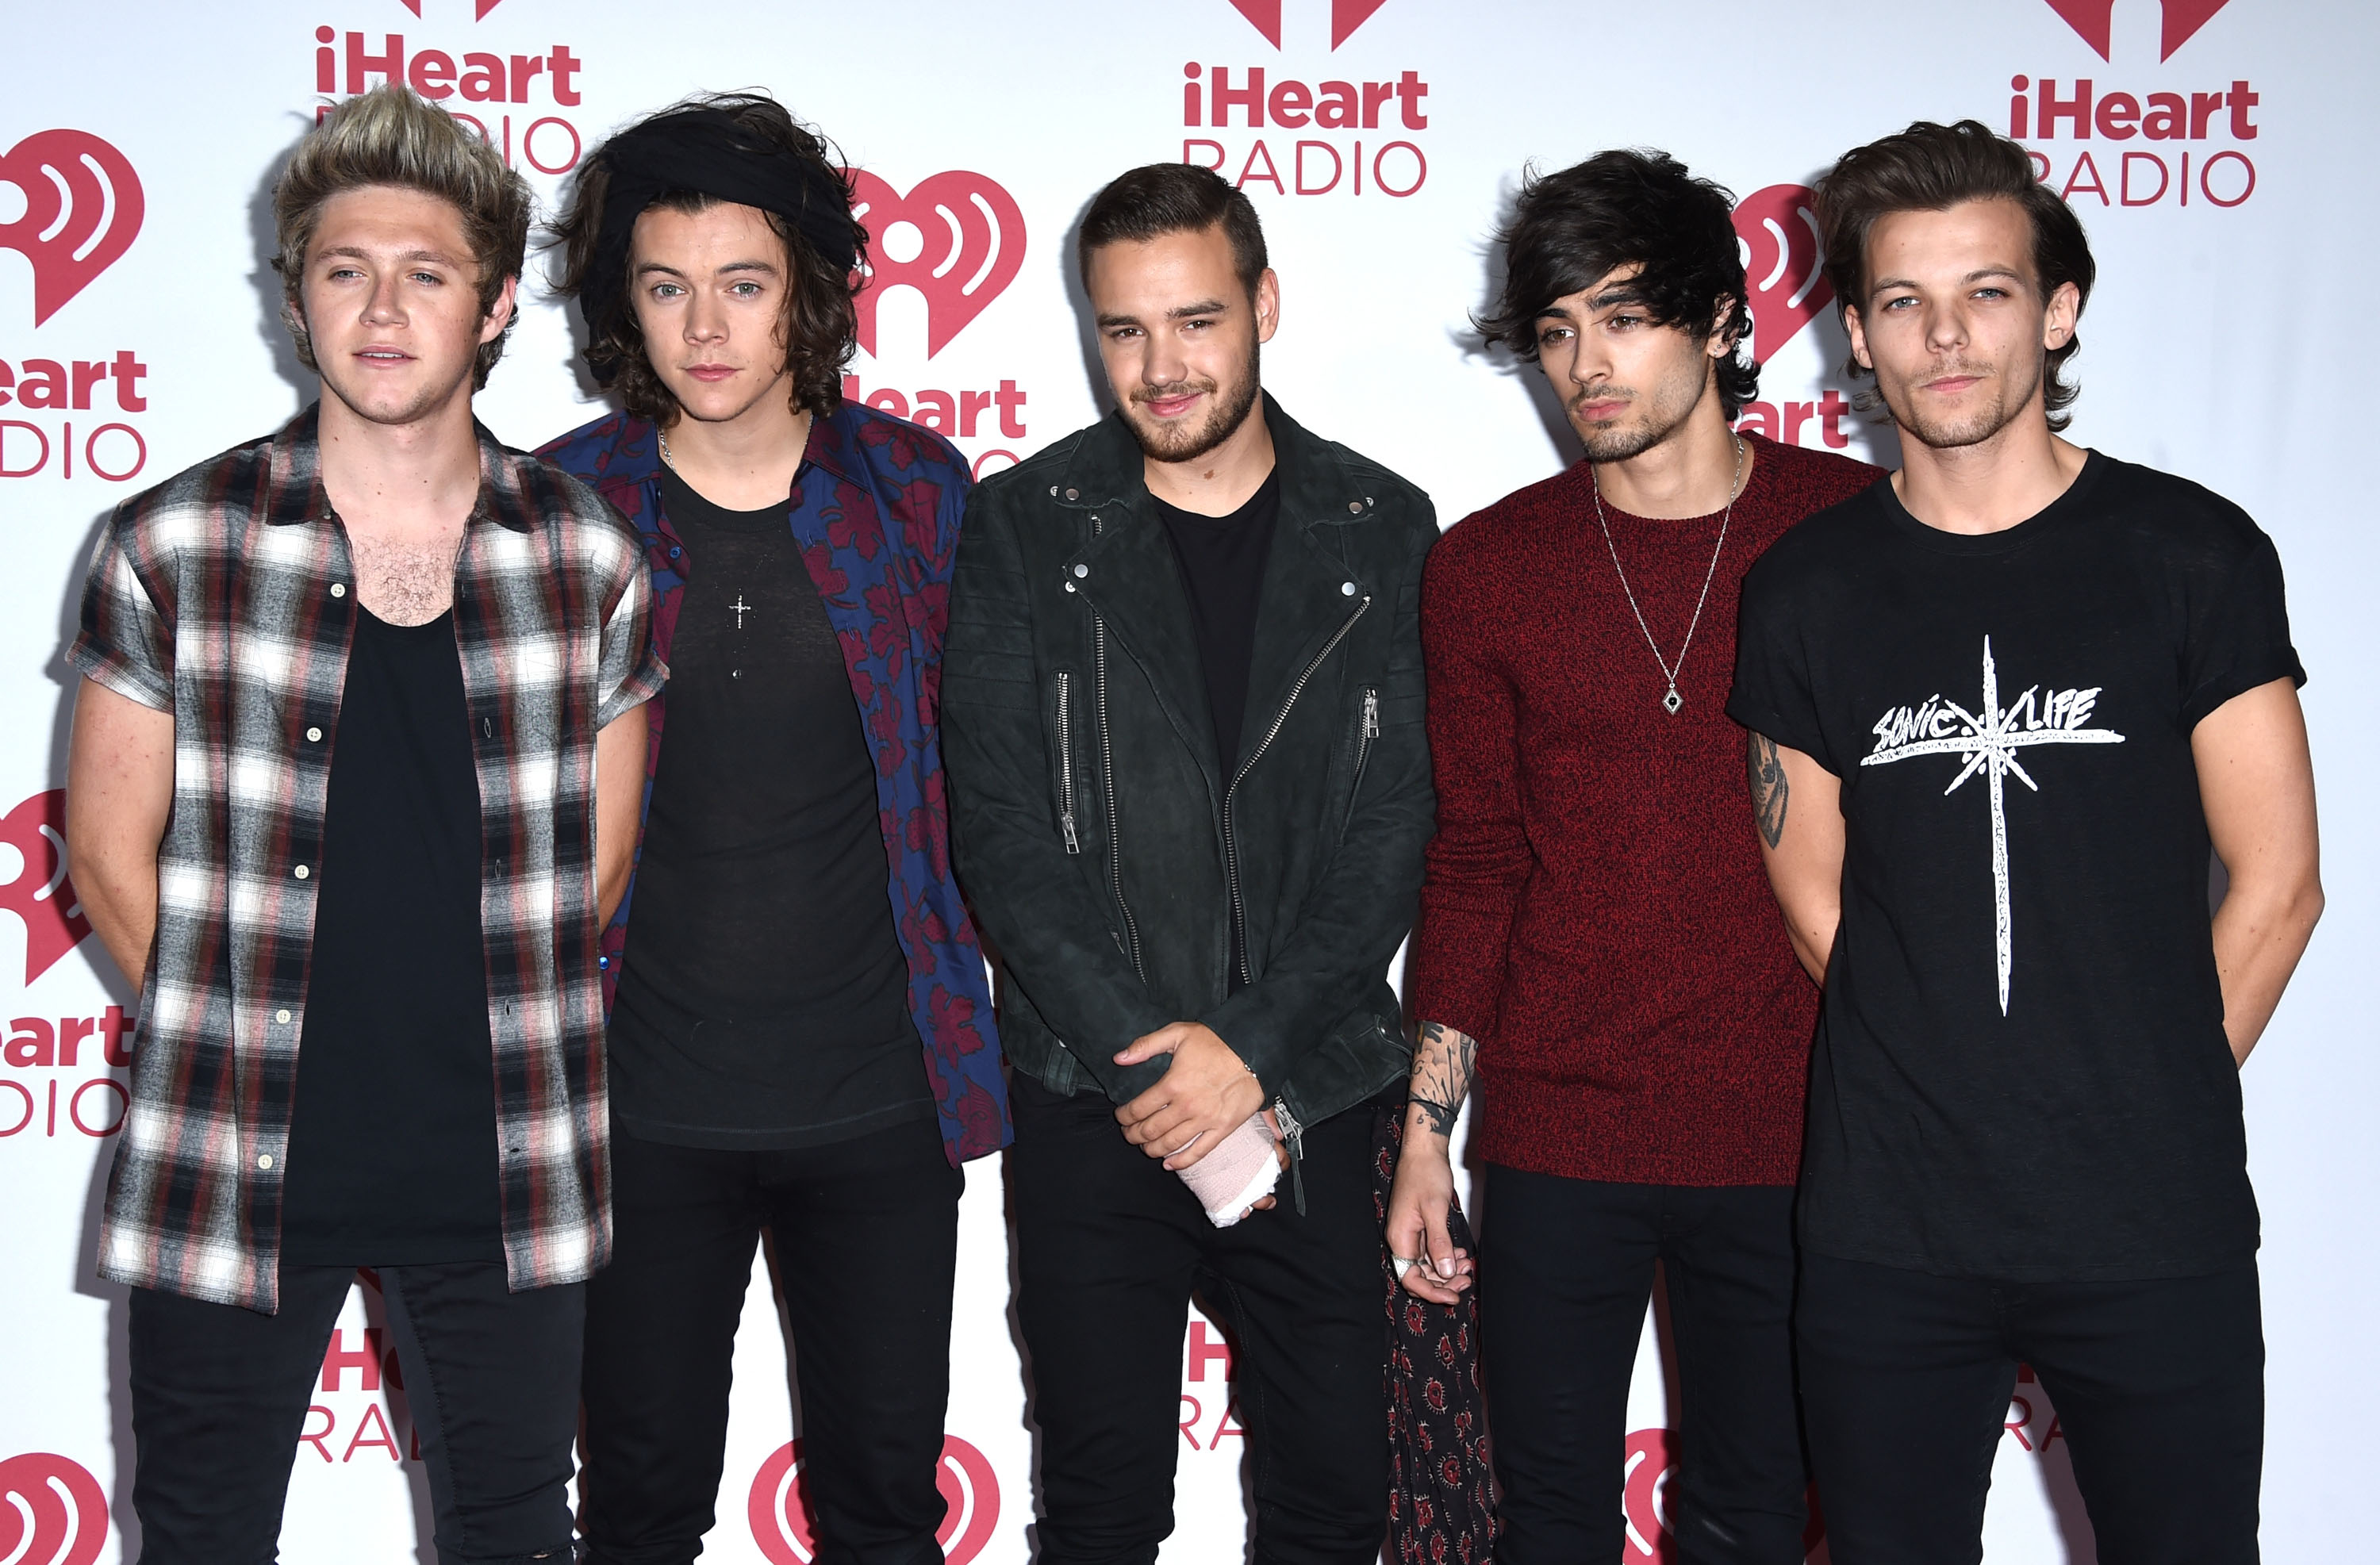 One Direction poses in the 2014 iHeartRadio Music Festival - Night 2